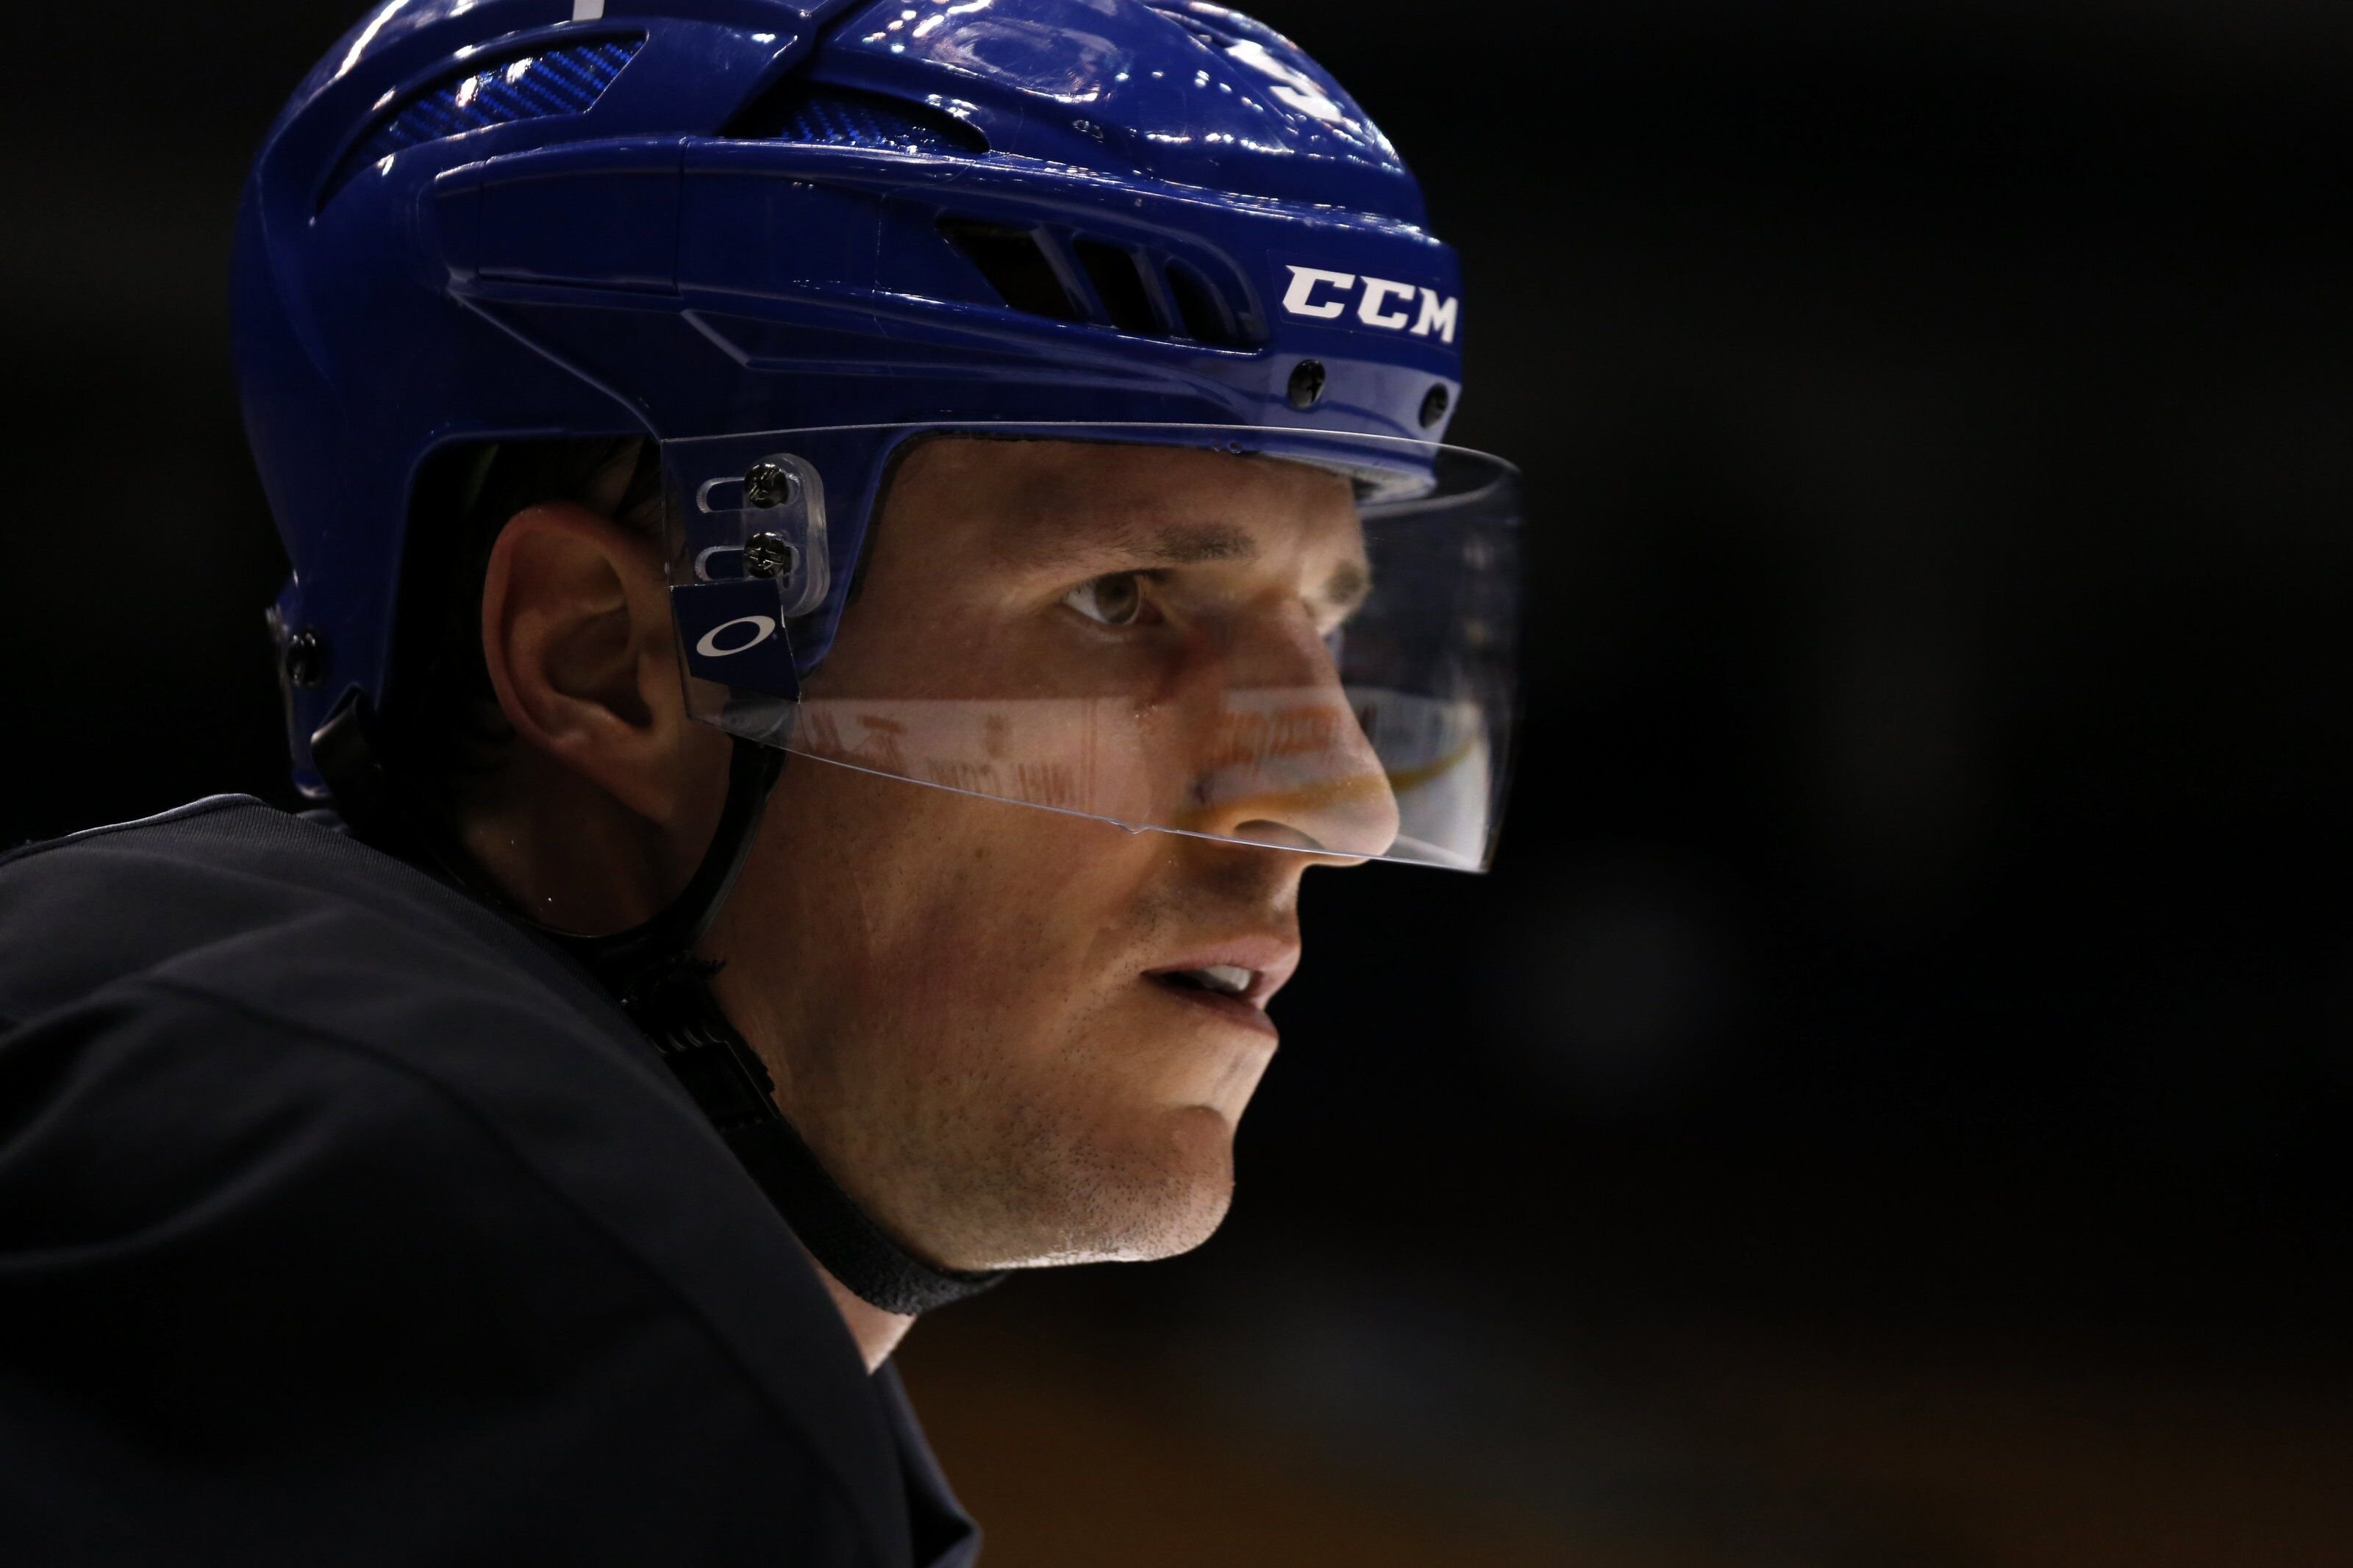 Toronto Maple Leafs: The Truth Behind Dion Phaneuf's Mysterious Appearance